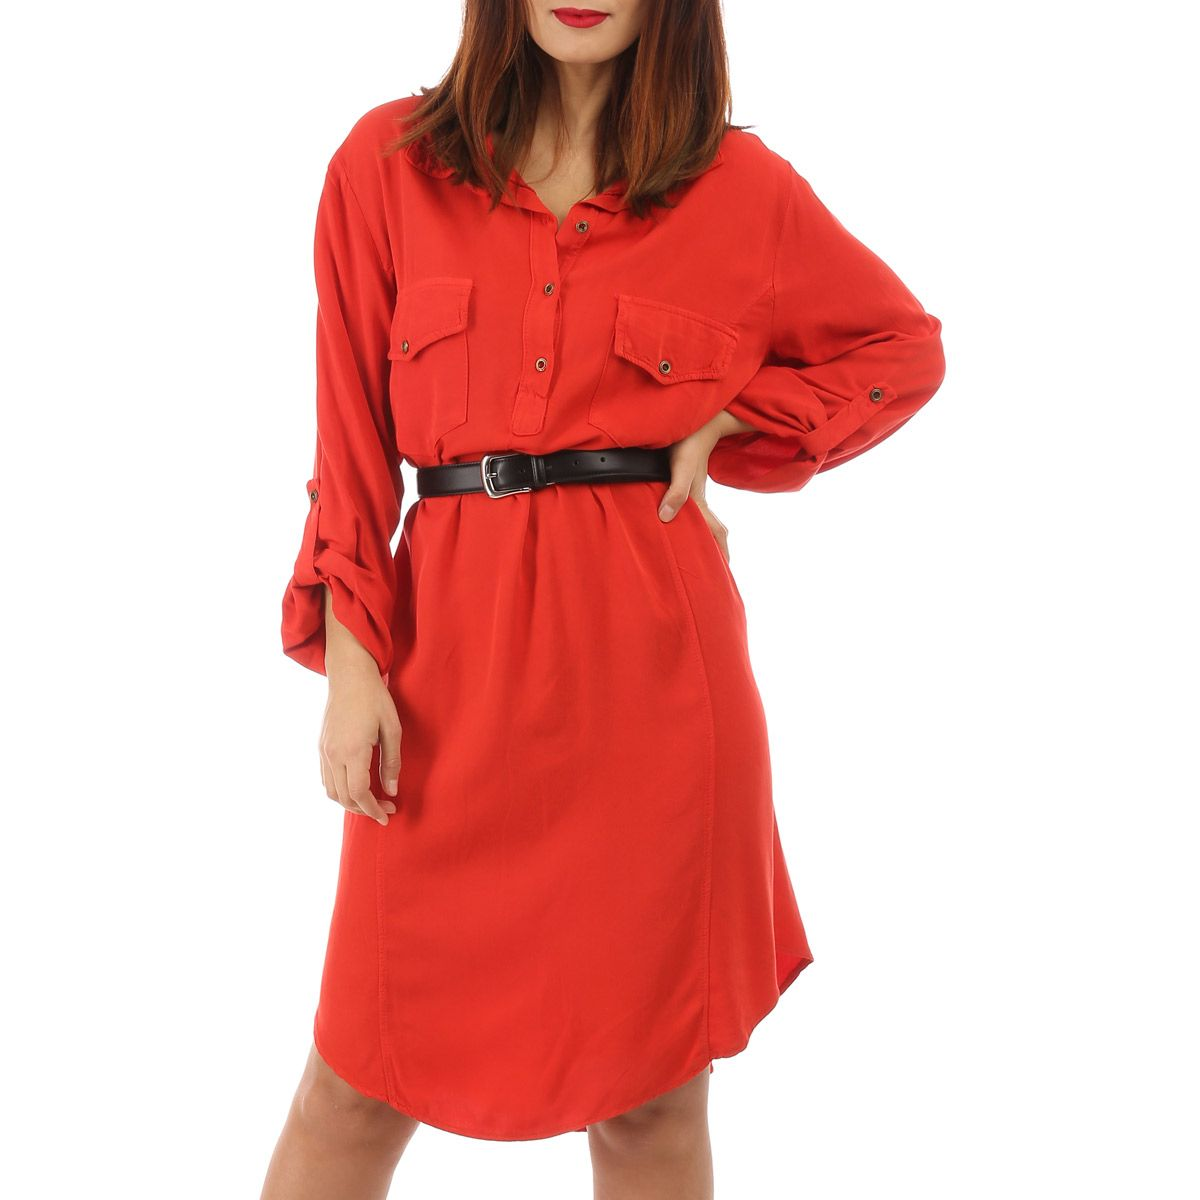 Robe rouge fluide à boutons style chemisier